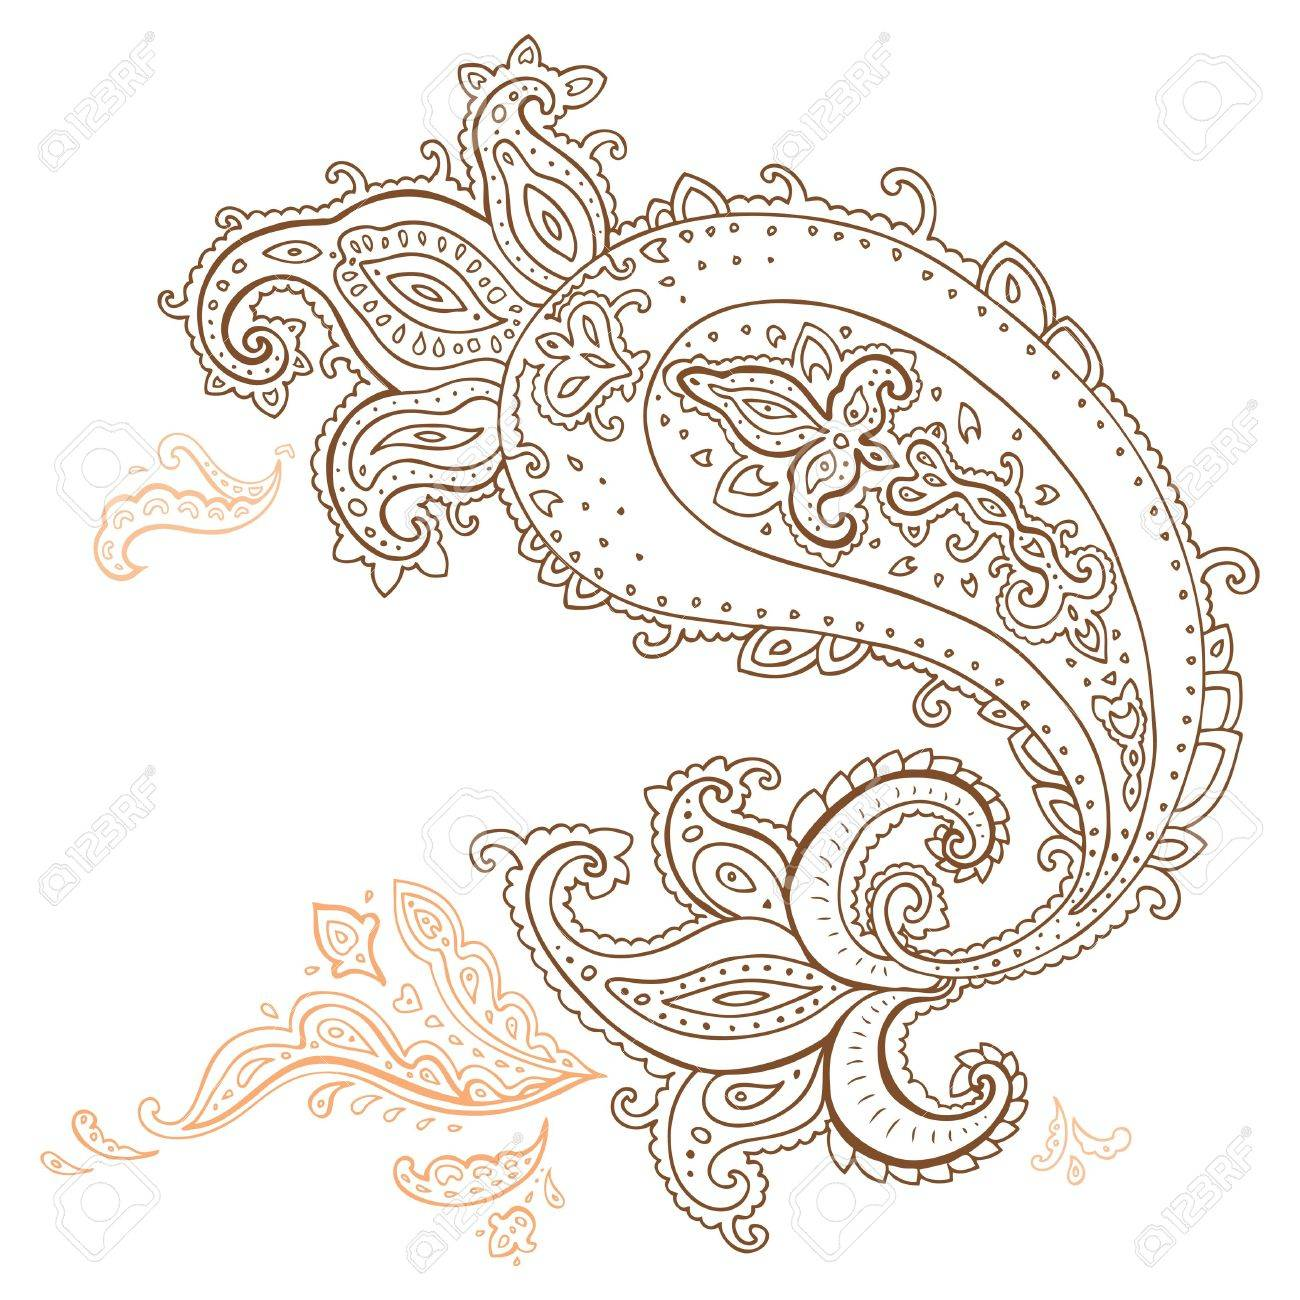 Paisley  Ethnic ornament illustration isolated Stock Vector - 18761386